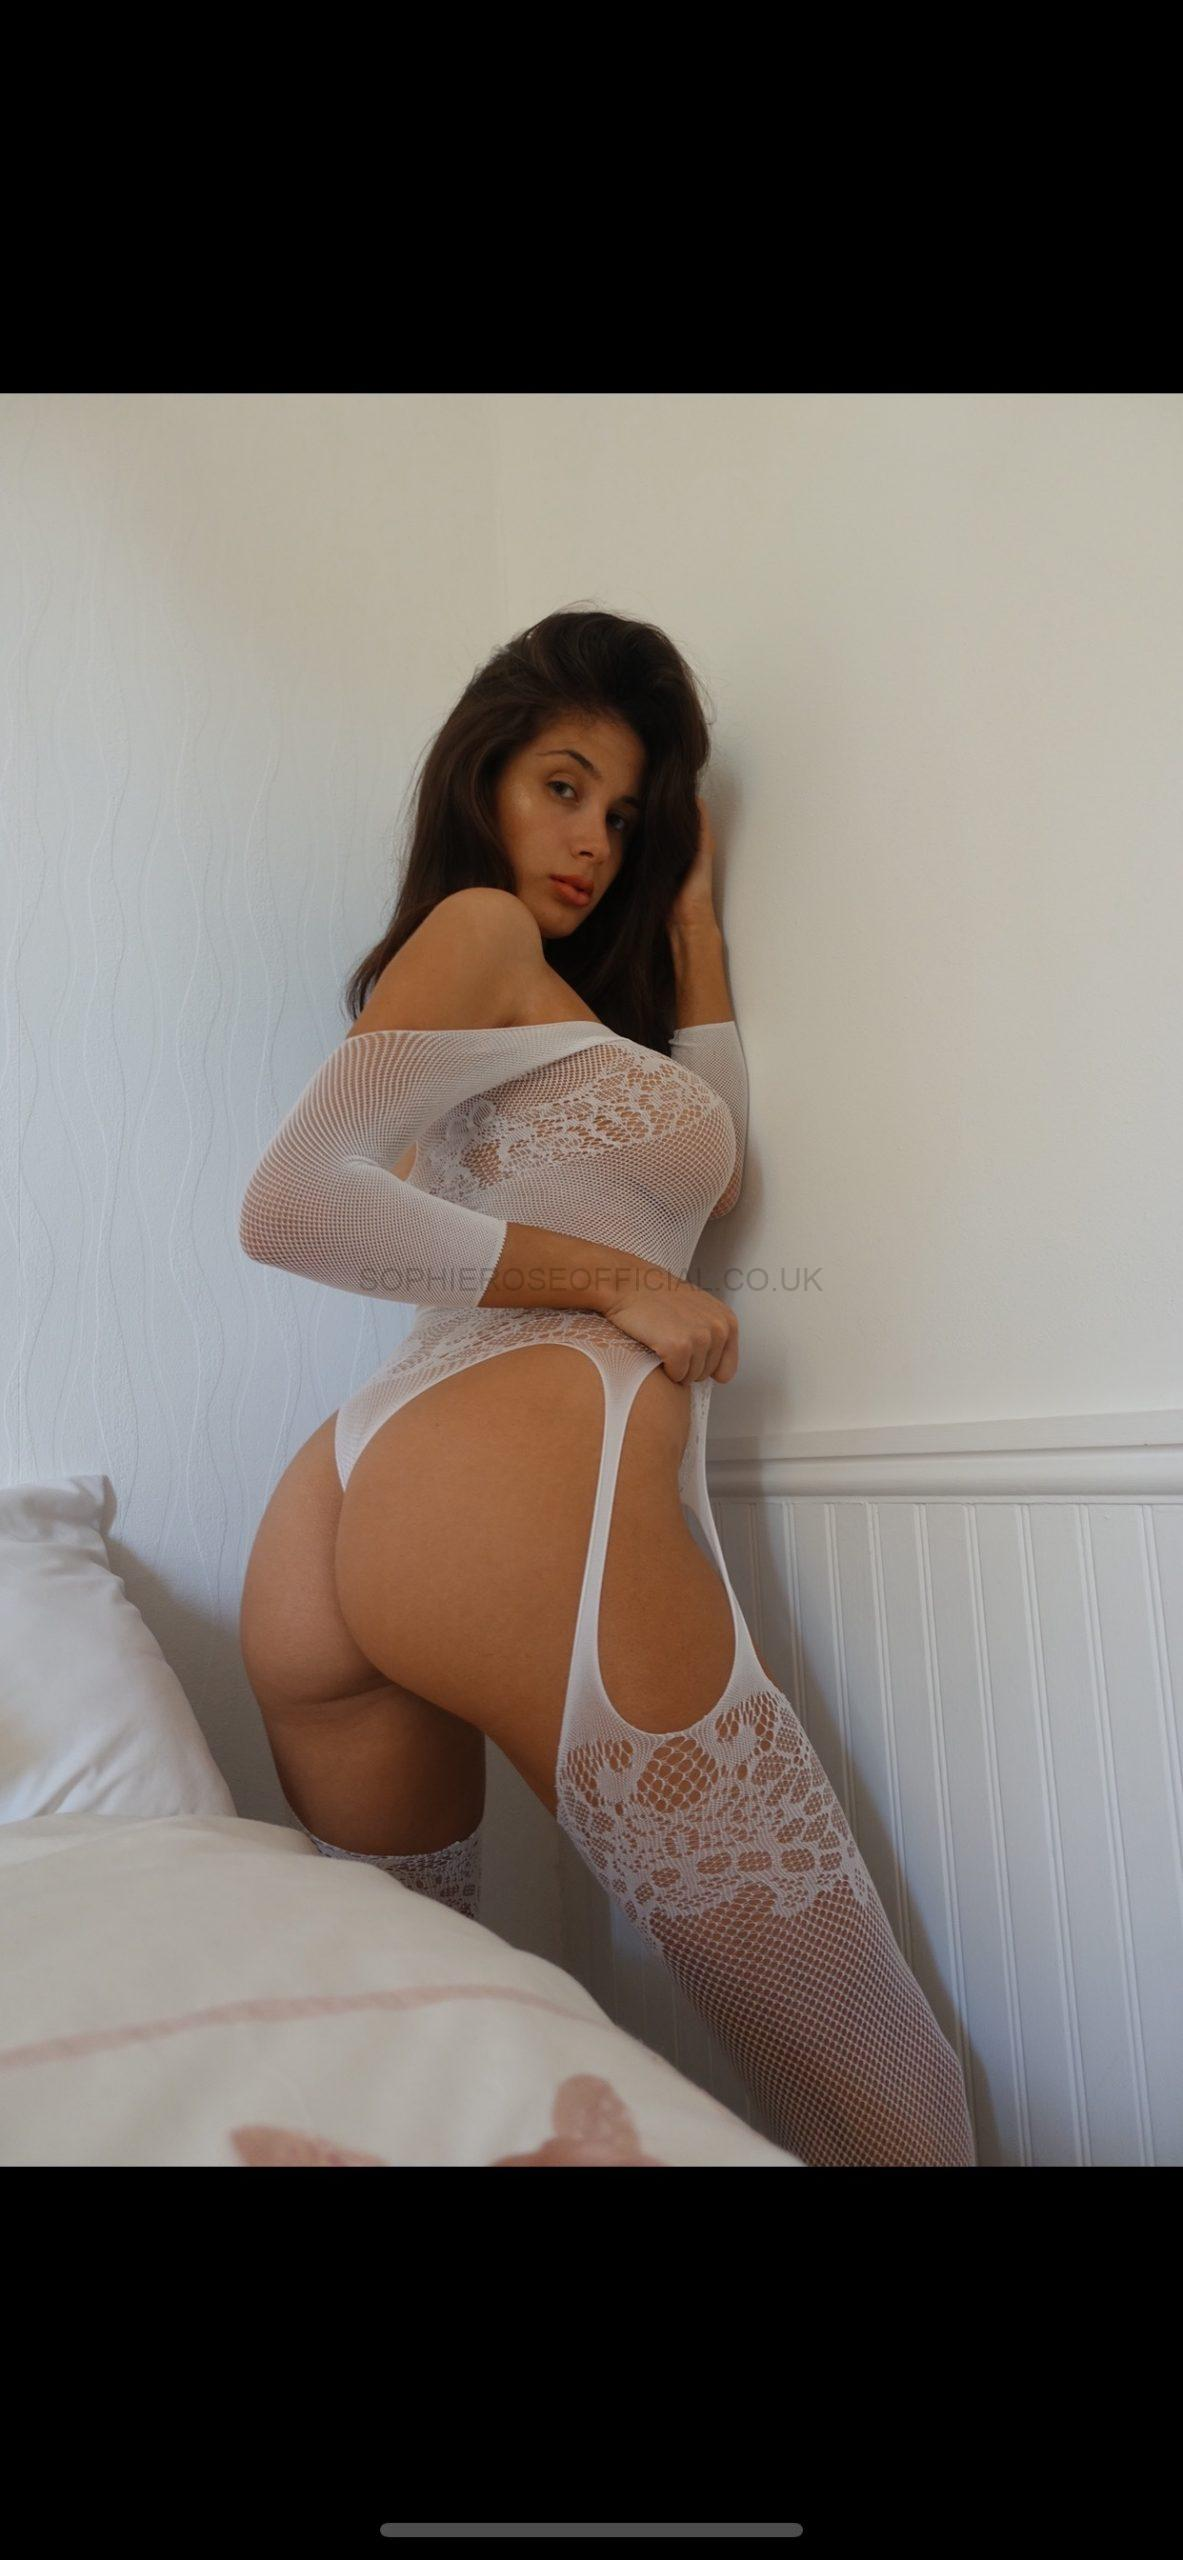 One piece….. netting is comfy😋😋